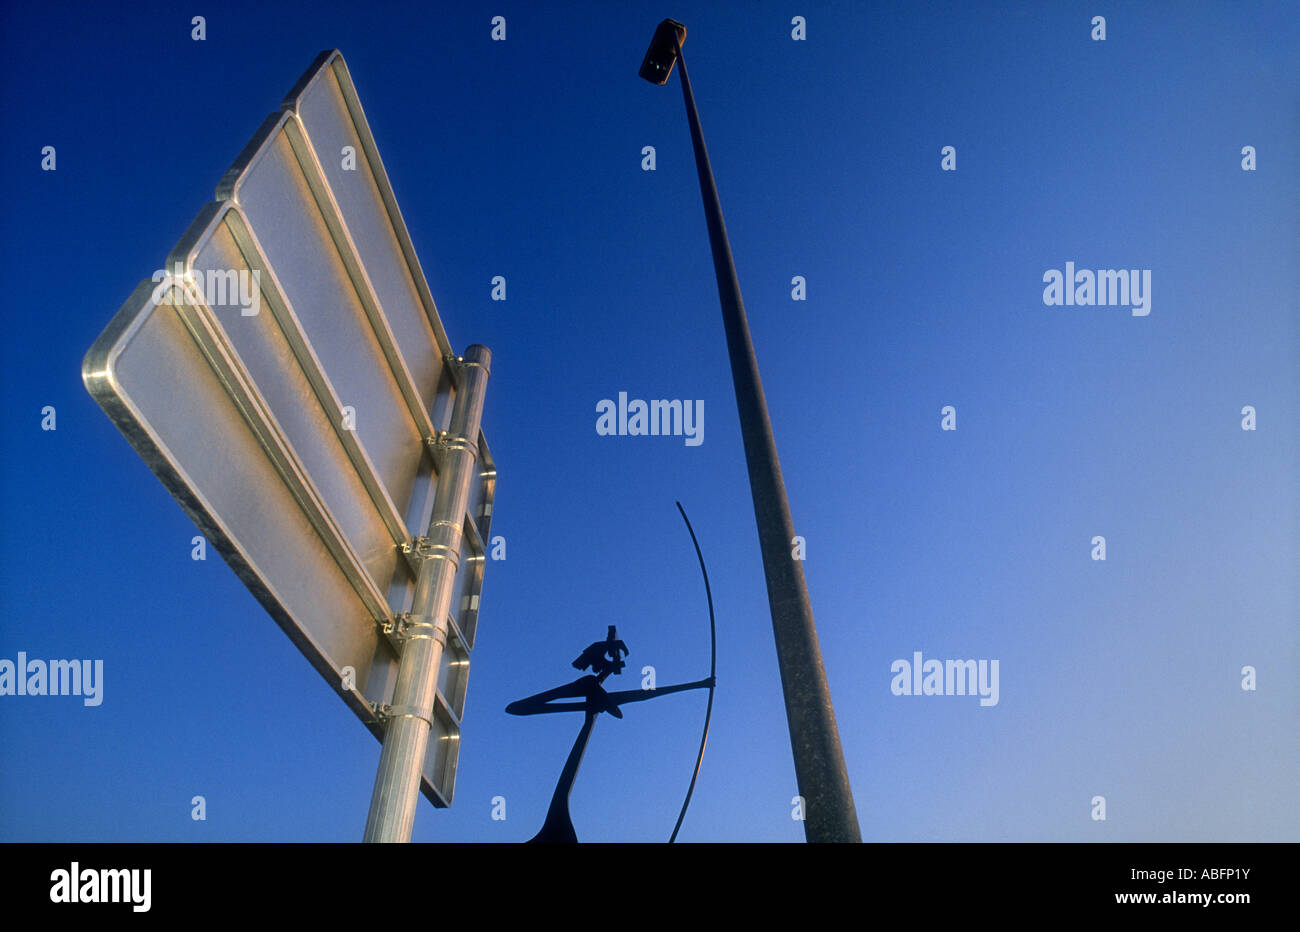 SCULPTURE IN MATARO, BARCELONA PROVINCE, CATALONIA, SPAIN - Stock Image